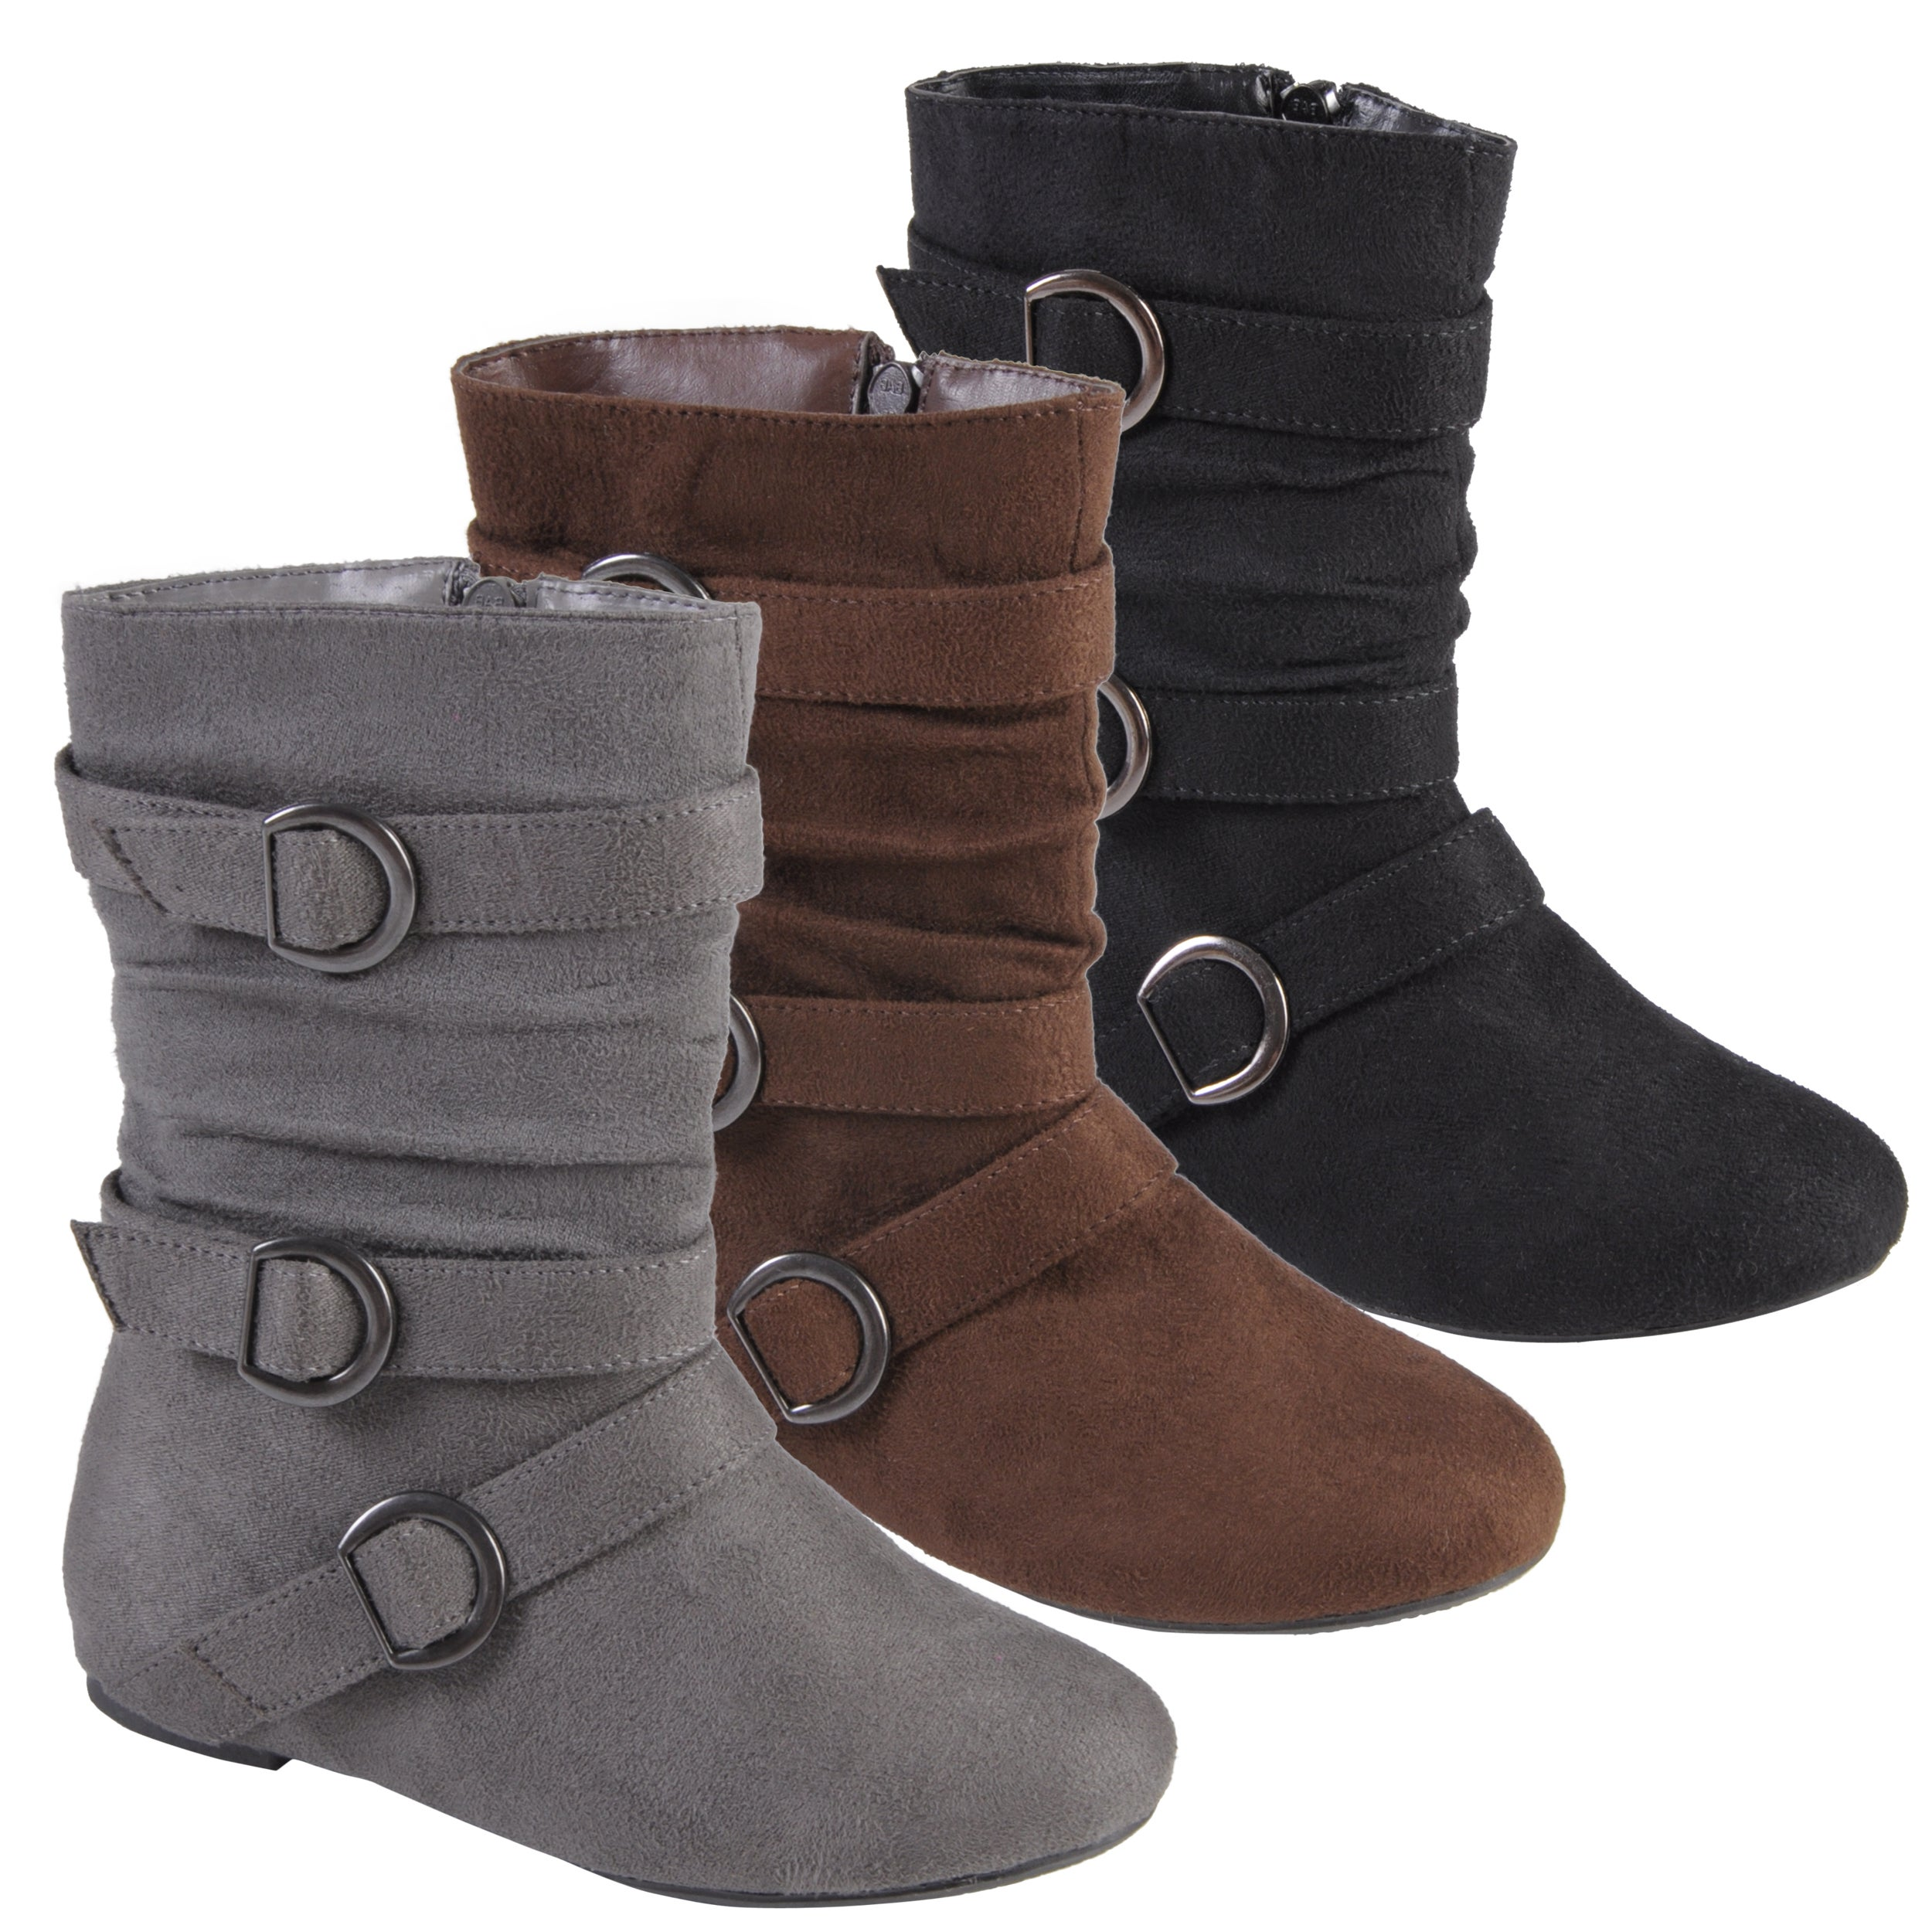 Journee Collection Kid's 'Sarena' Buckle Accent Suede Boots